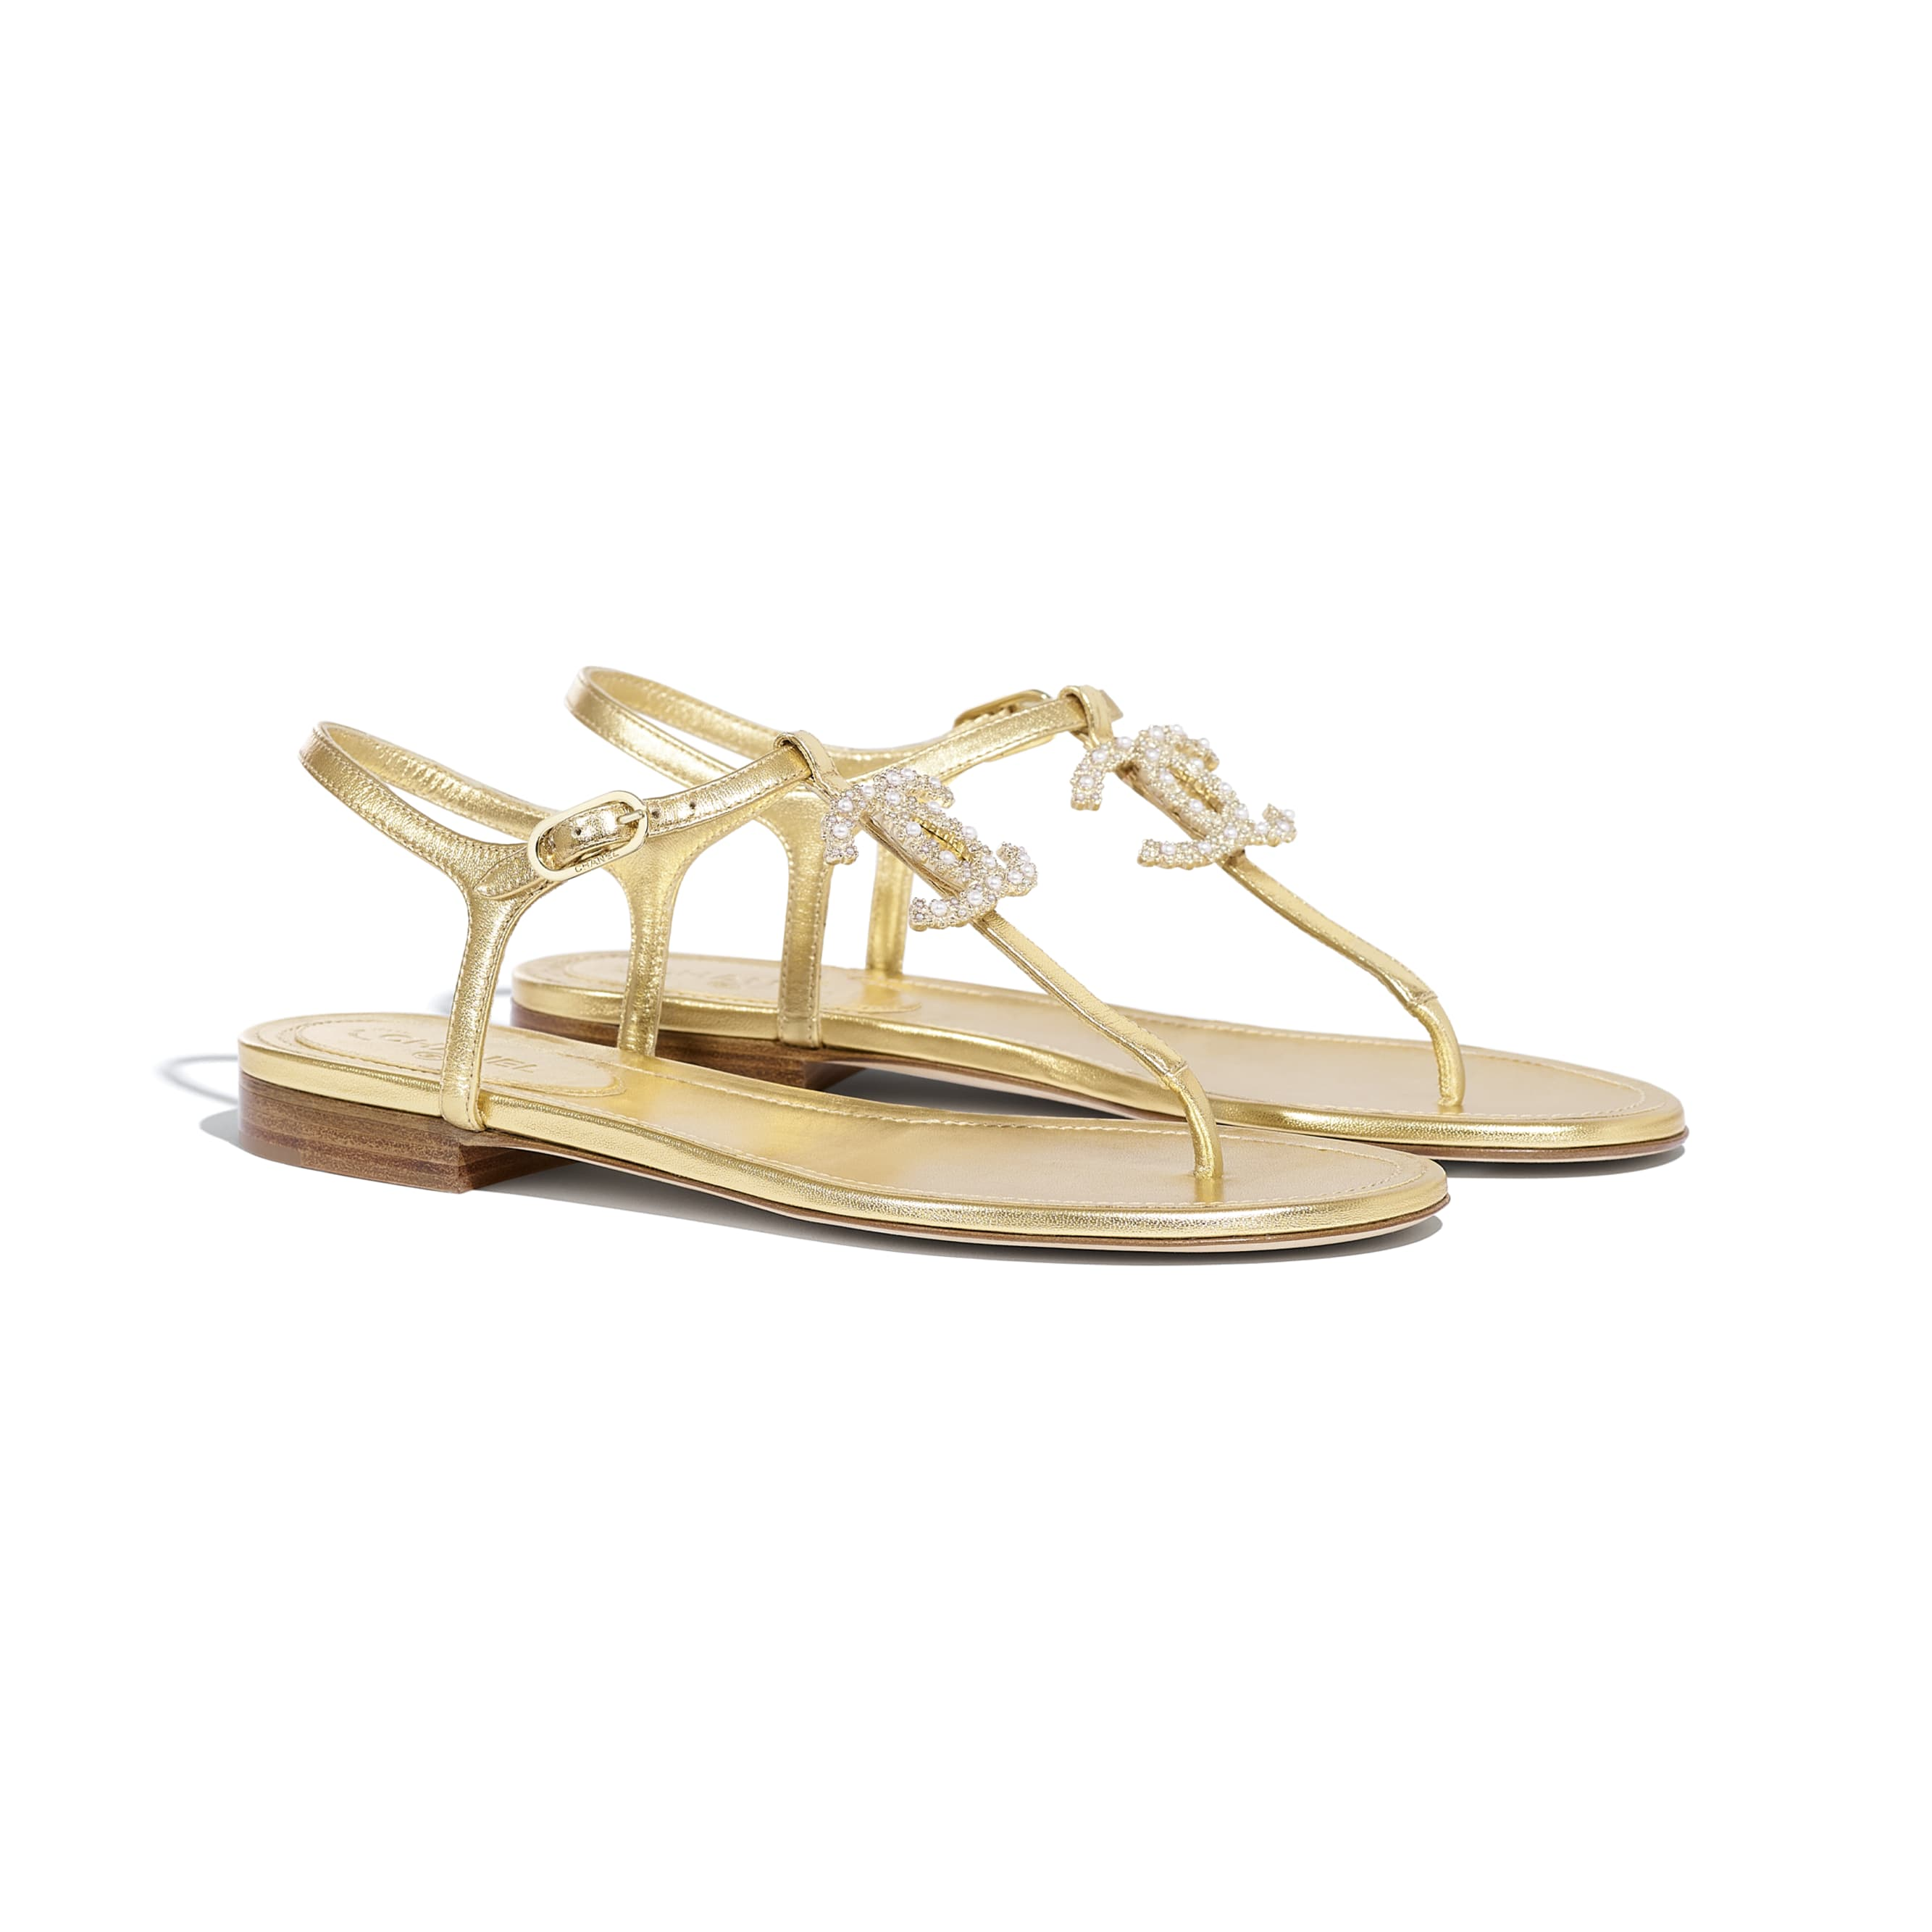 Sandals - Gold - Laminated Lambskin - CHANEL - Alternative view - see standard sized version